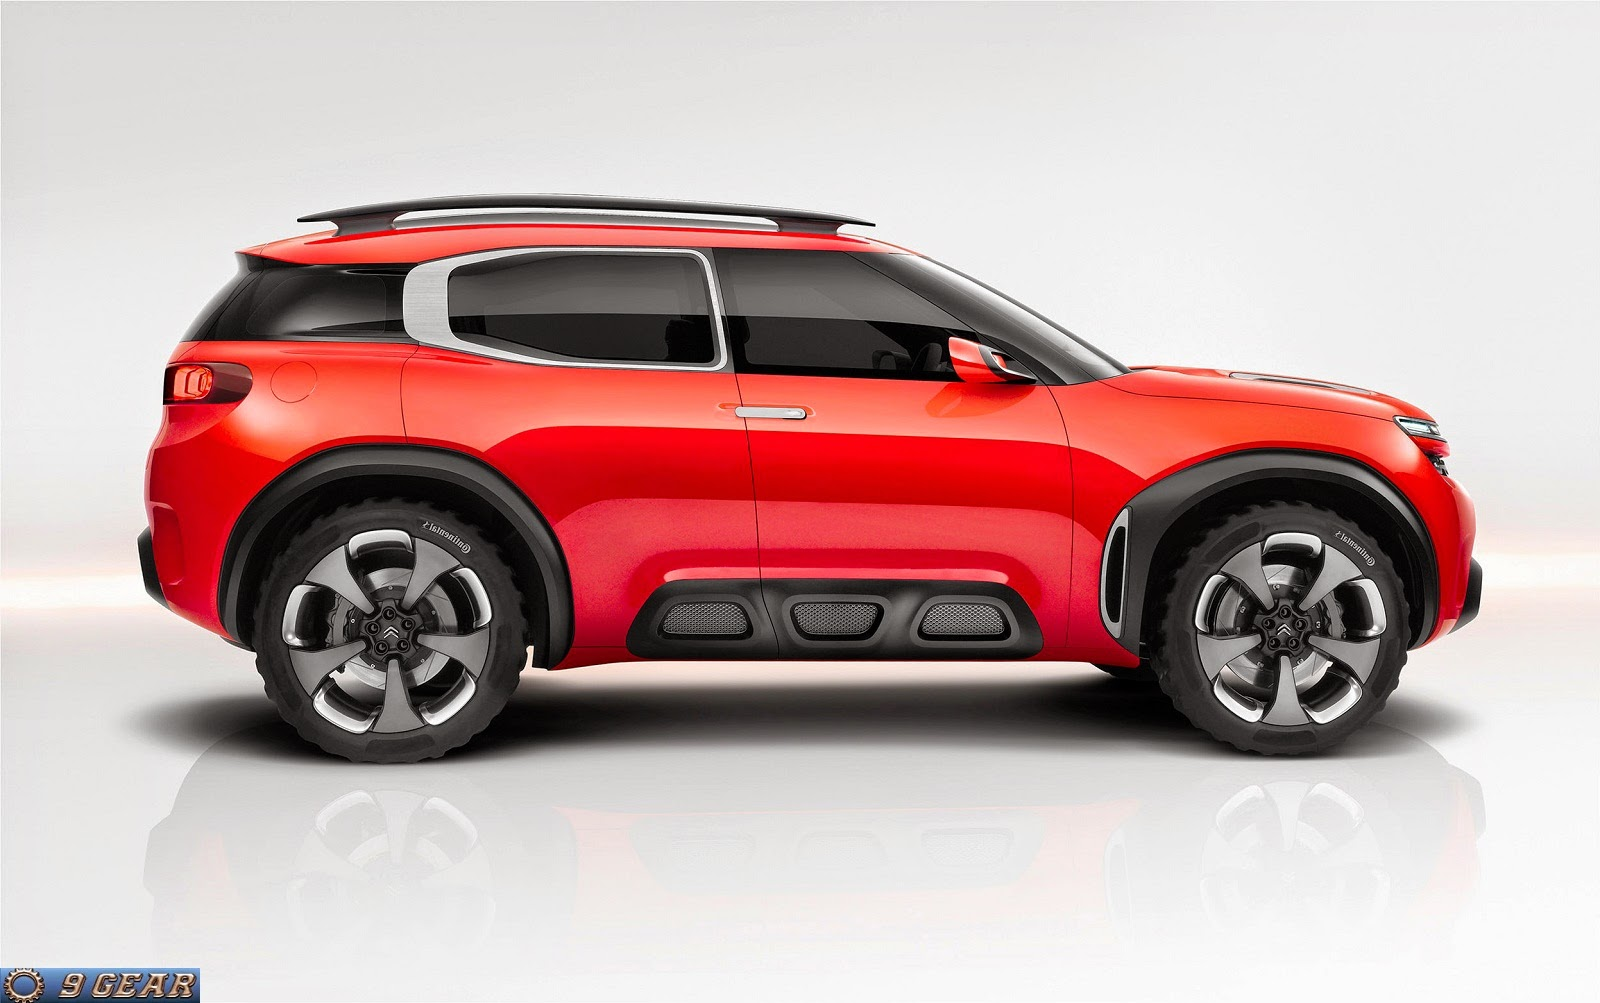 car reviews new car pictures for 2018 2019 new citroen aircross suv concept revealed. Black Bedroom Furniture Sets. Home Design Ideas